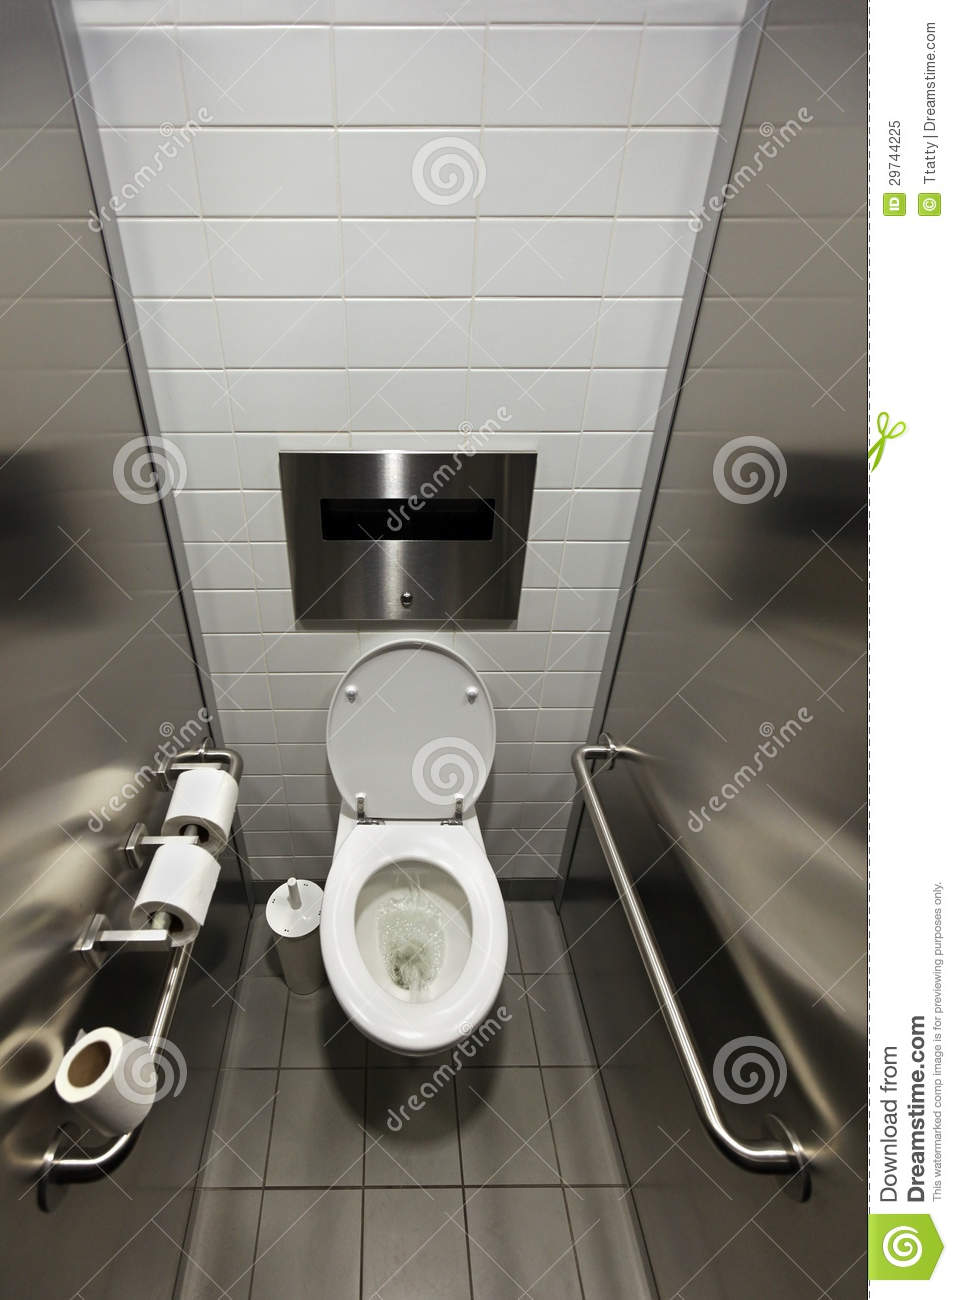 Public Toilet Royalty Free Stock Photo Image 29744225